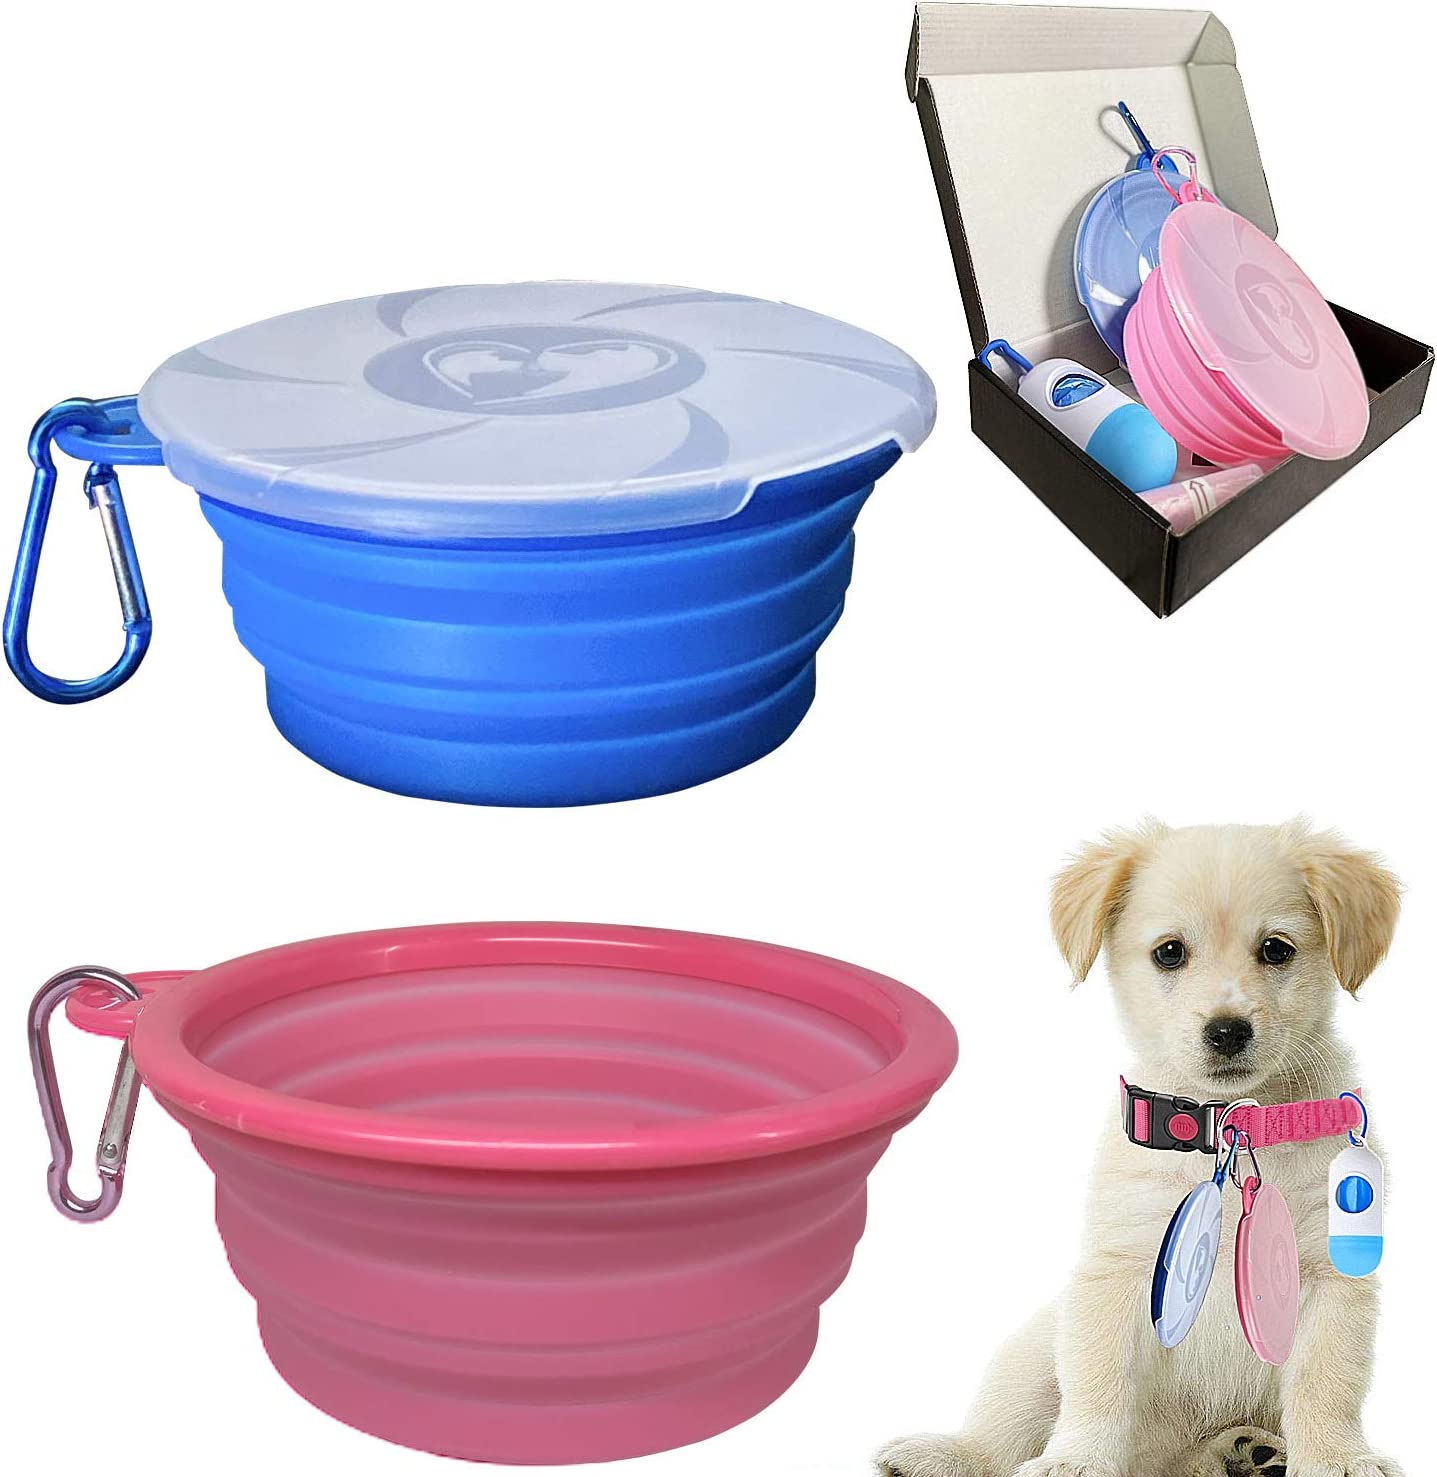 Collapsible Dog Bowl for Travel, 2 Pack Silicone Foldable Bowls with Lids & Dog Poop Bag with Dispenser, Dog Water Food Bowl Cat Feeding Cup Dish, Small Dog Portable Bowl Set,450ml,15oz